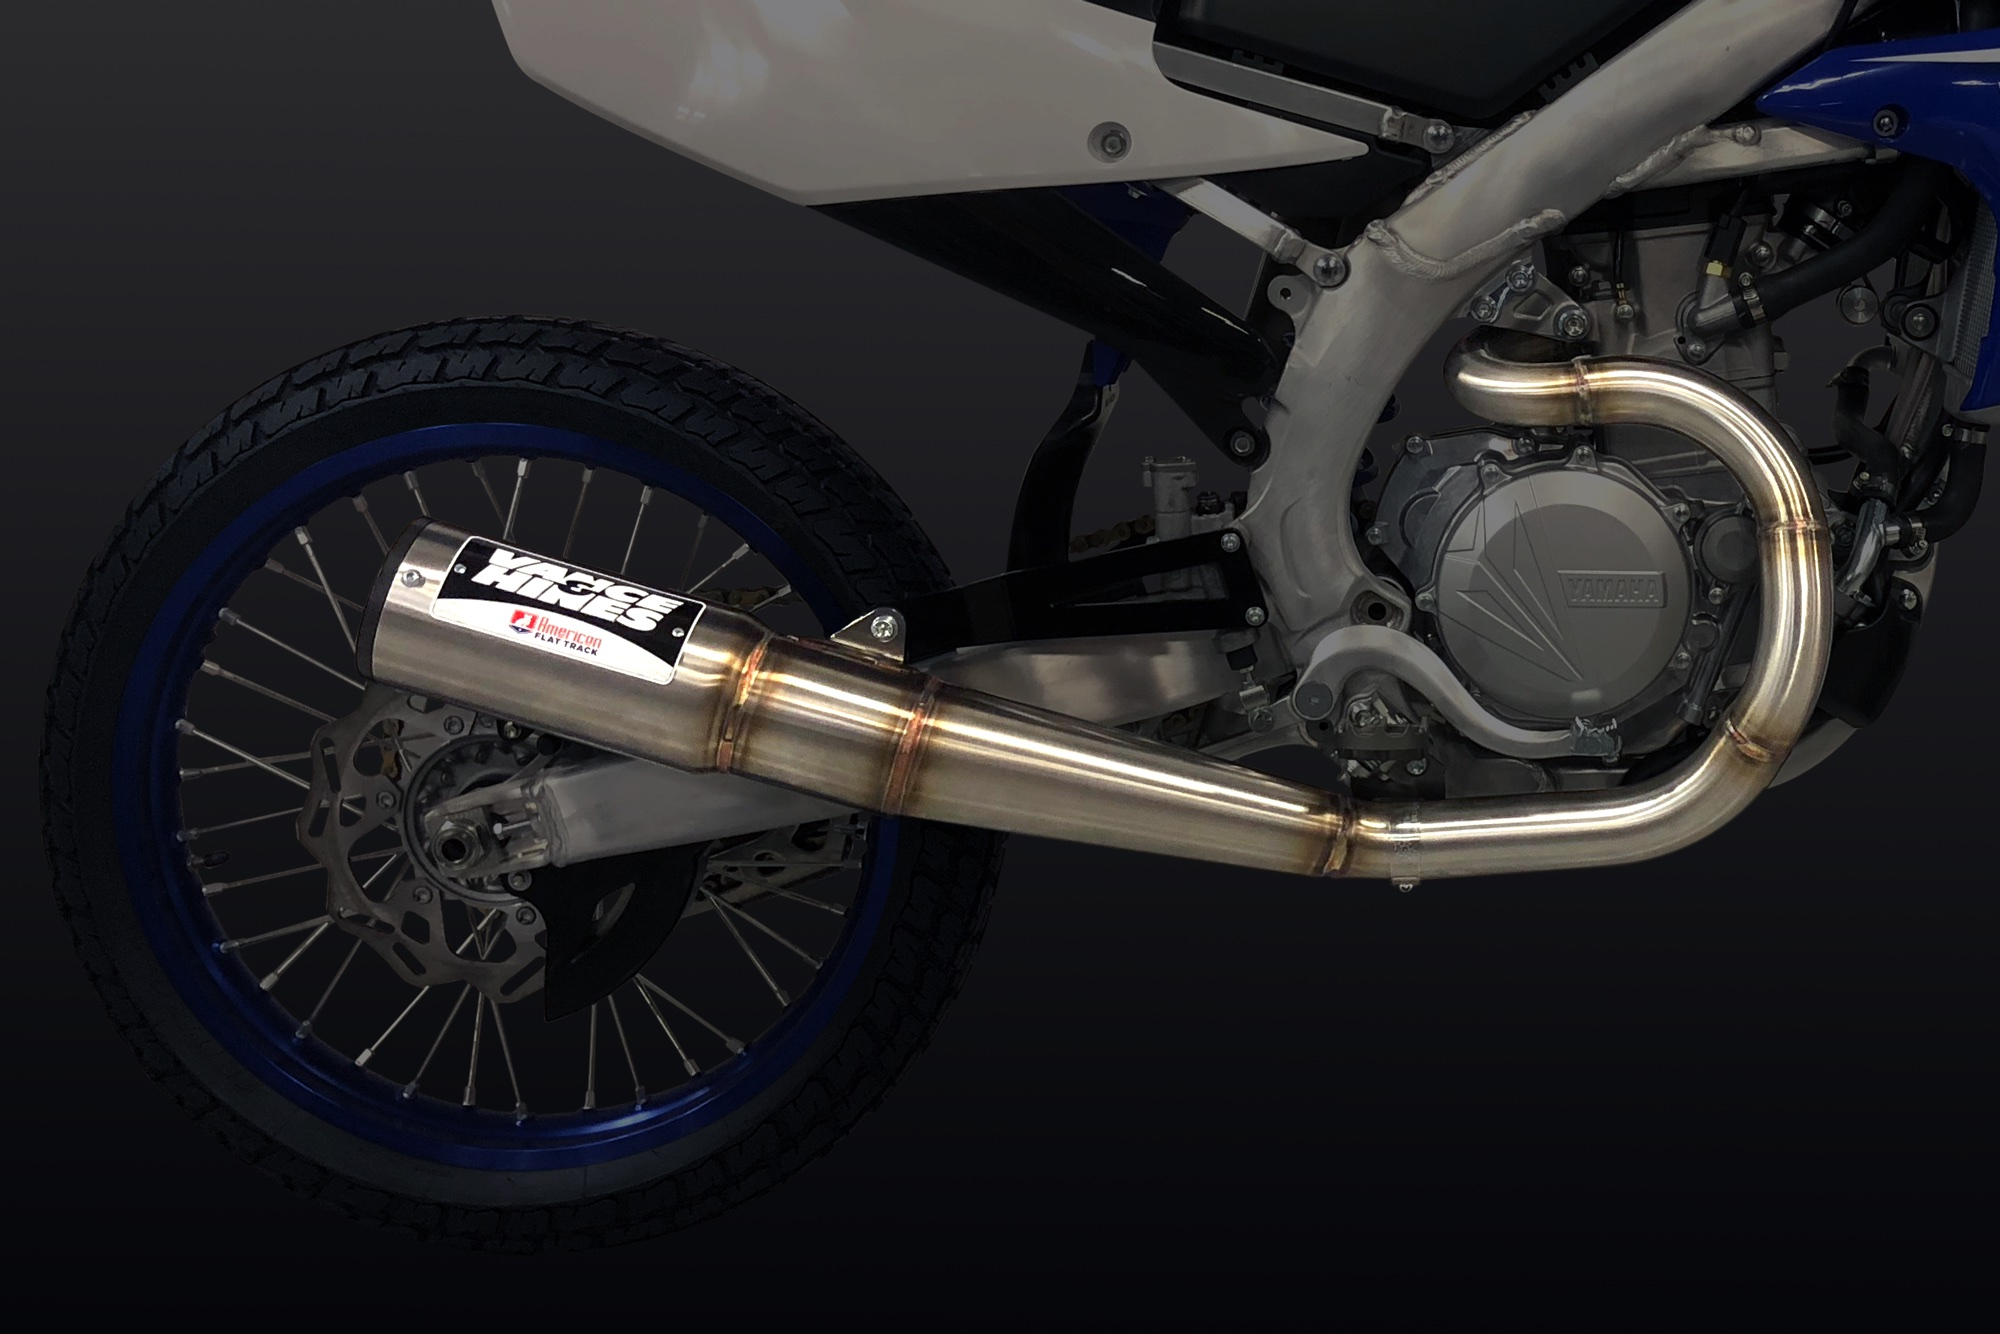 180212 Vance & Hines Launches Officially-Licensed American Flat Track Exhaust System for AFT Singles- Yamaha